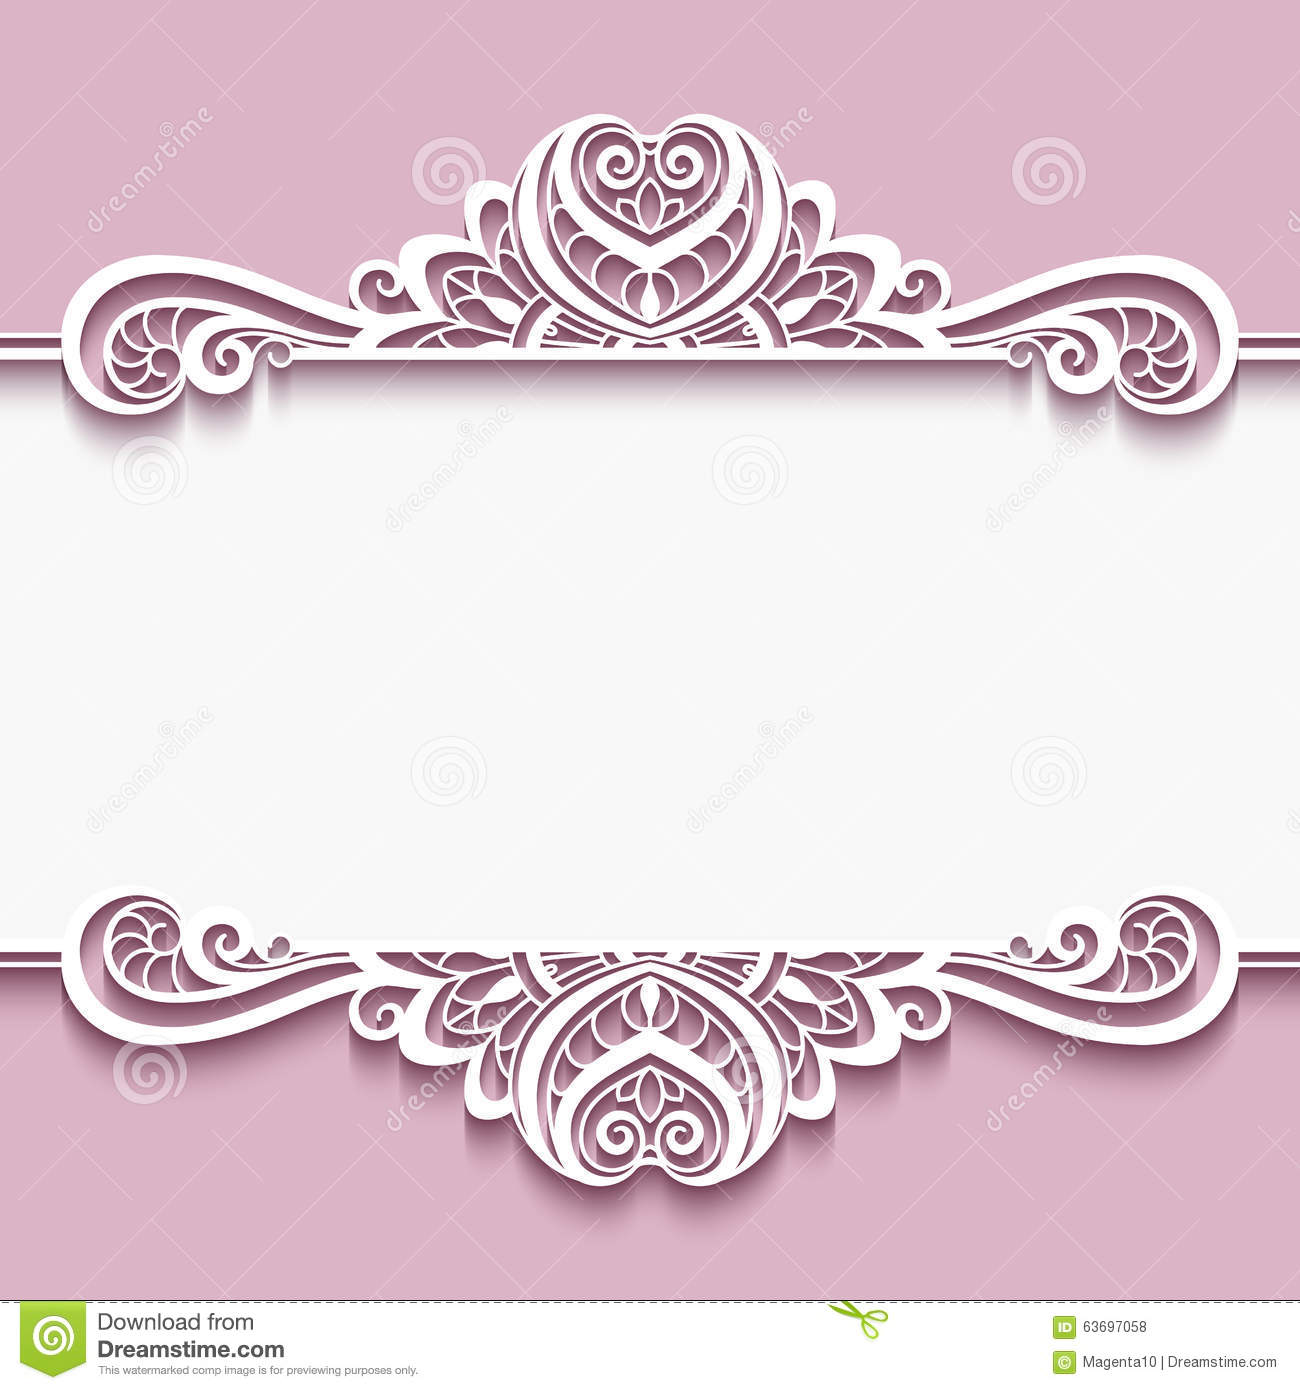 cutout paper frame with lace border ornament stock vector